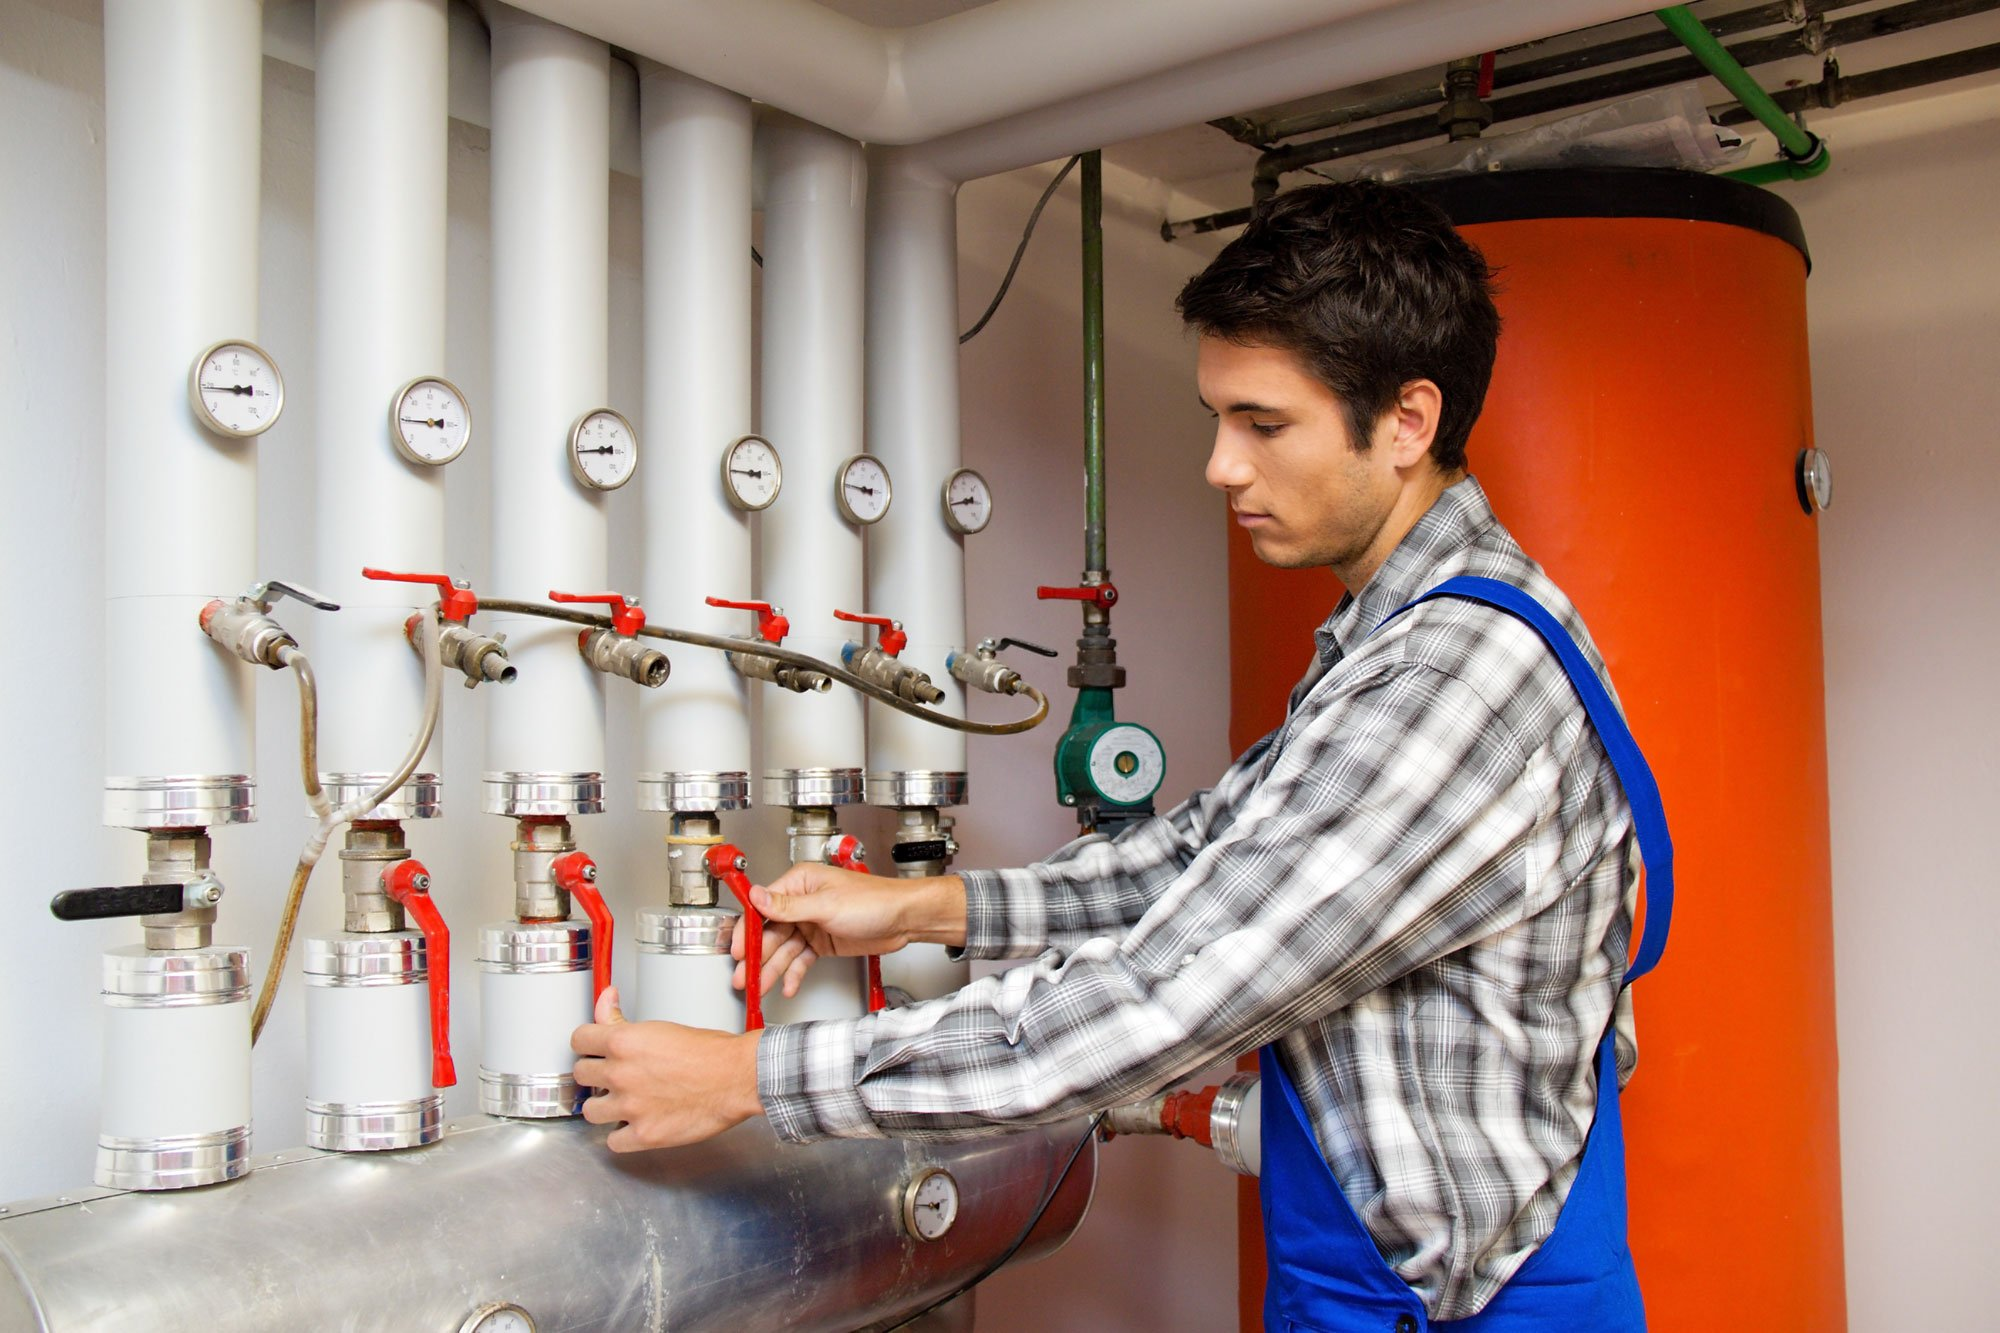 Professional checking Heating System